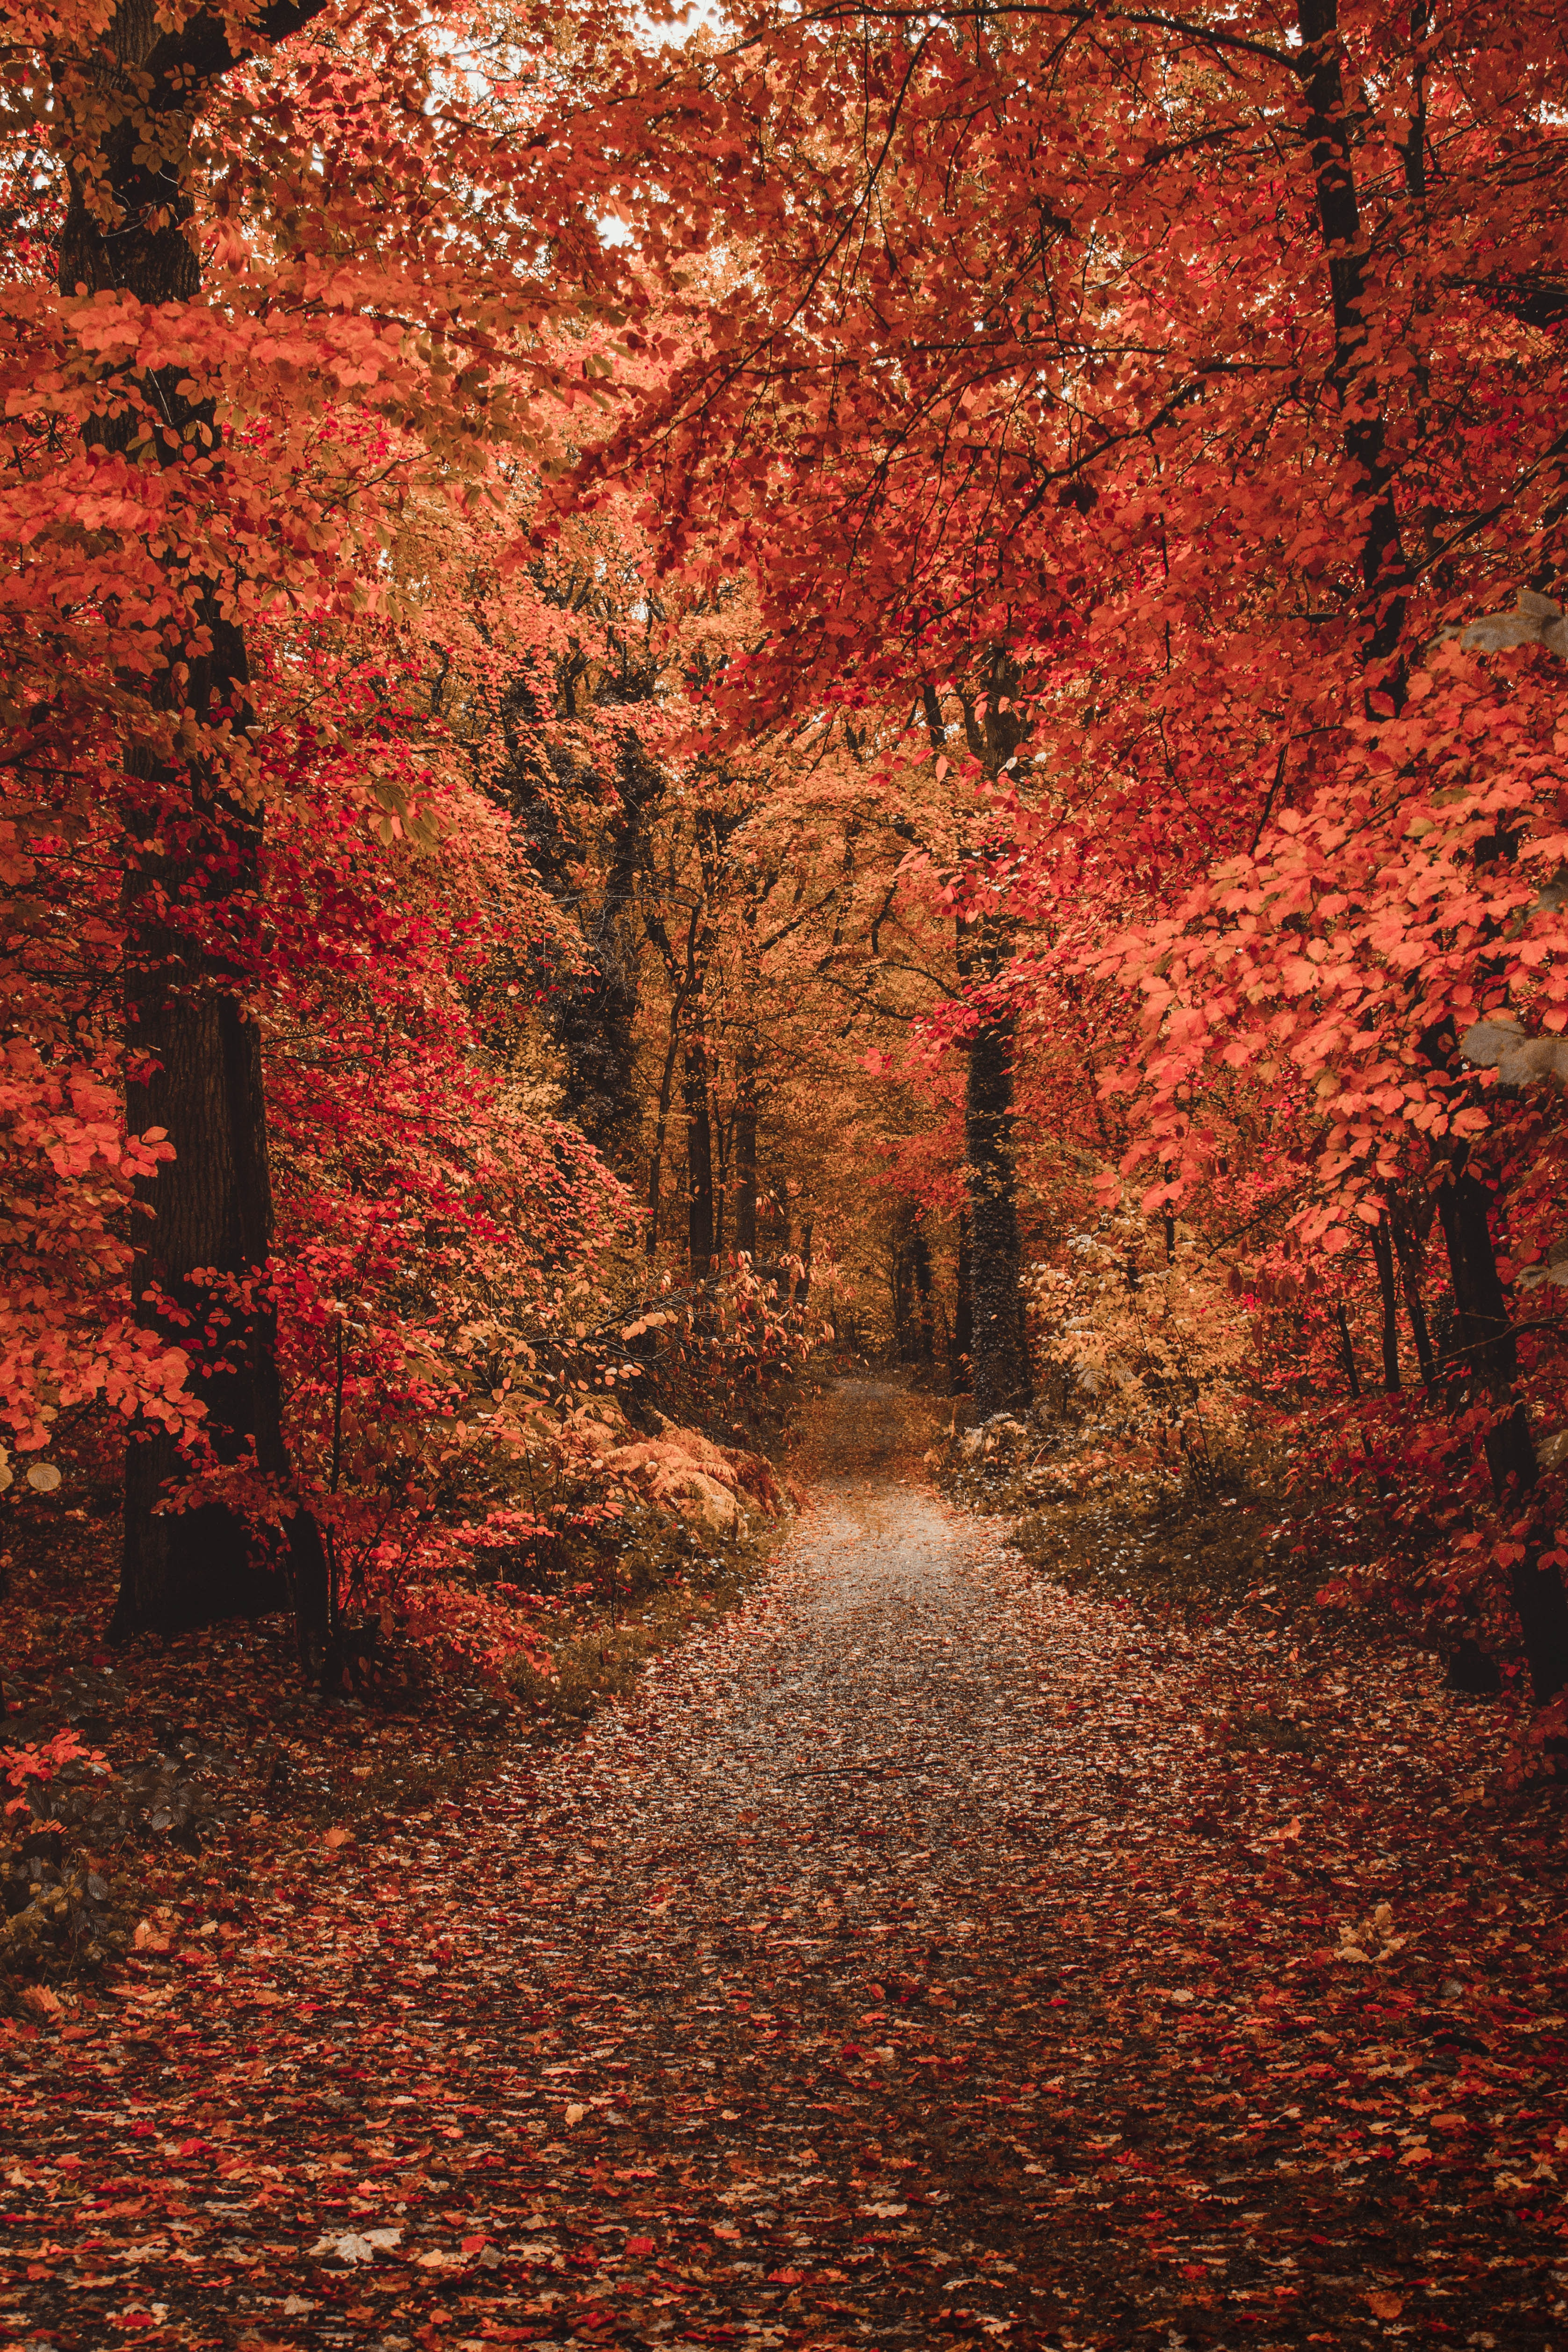 125662 download wallpaper Nature, Autumn, Forest, Path, Foliage, Trees, Autumn Colors, Autumn Paints screensavers and pictures for free